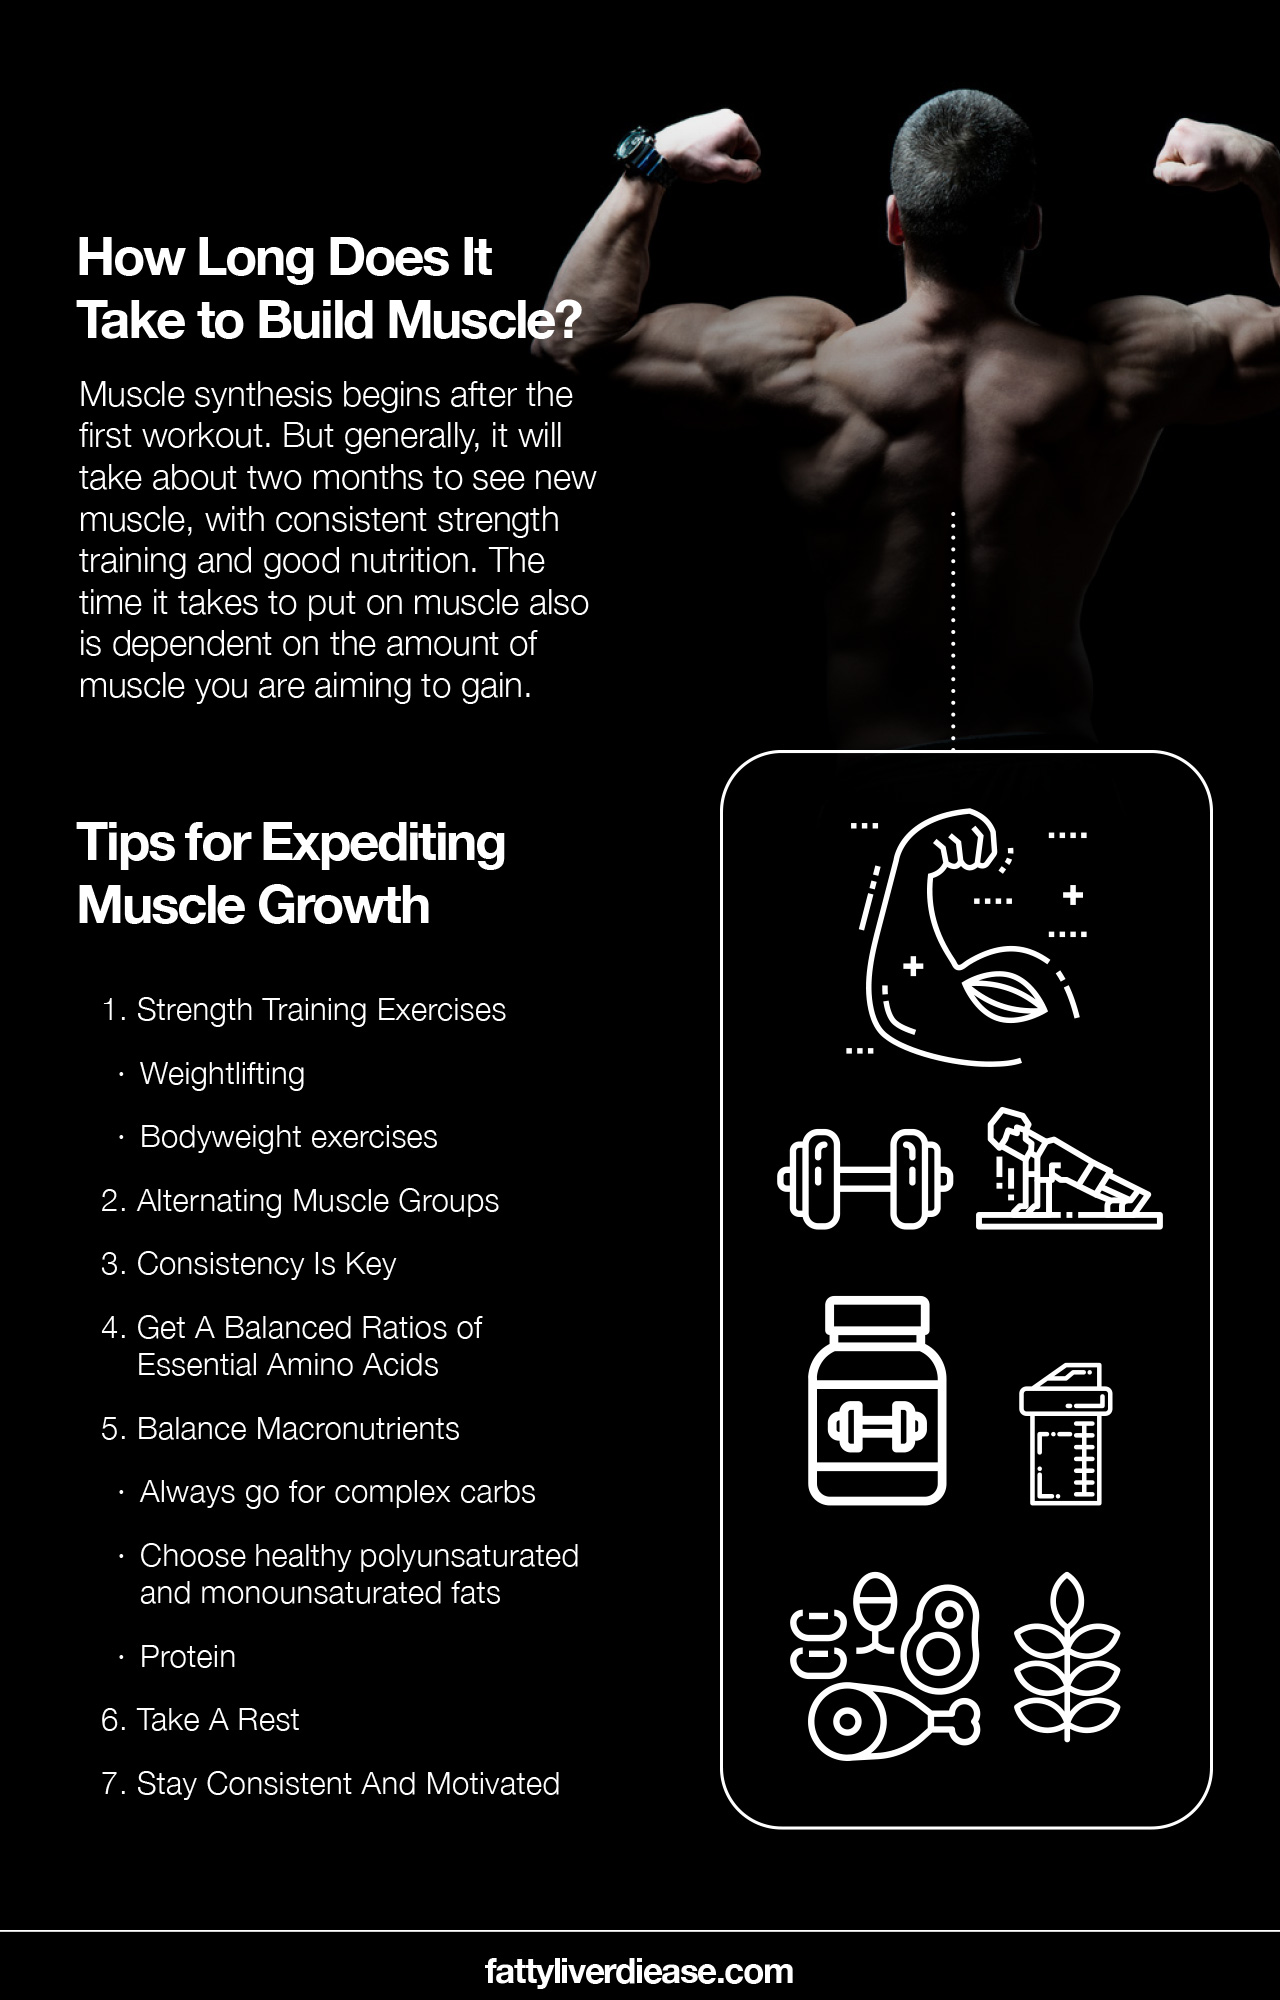 How Long Does It Take to Build Muscle?